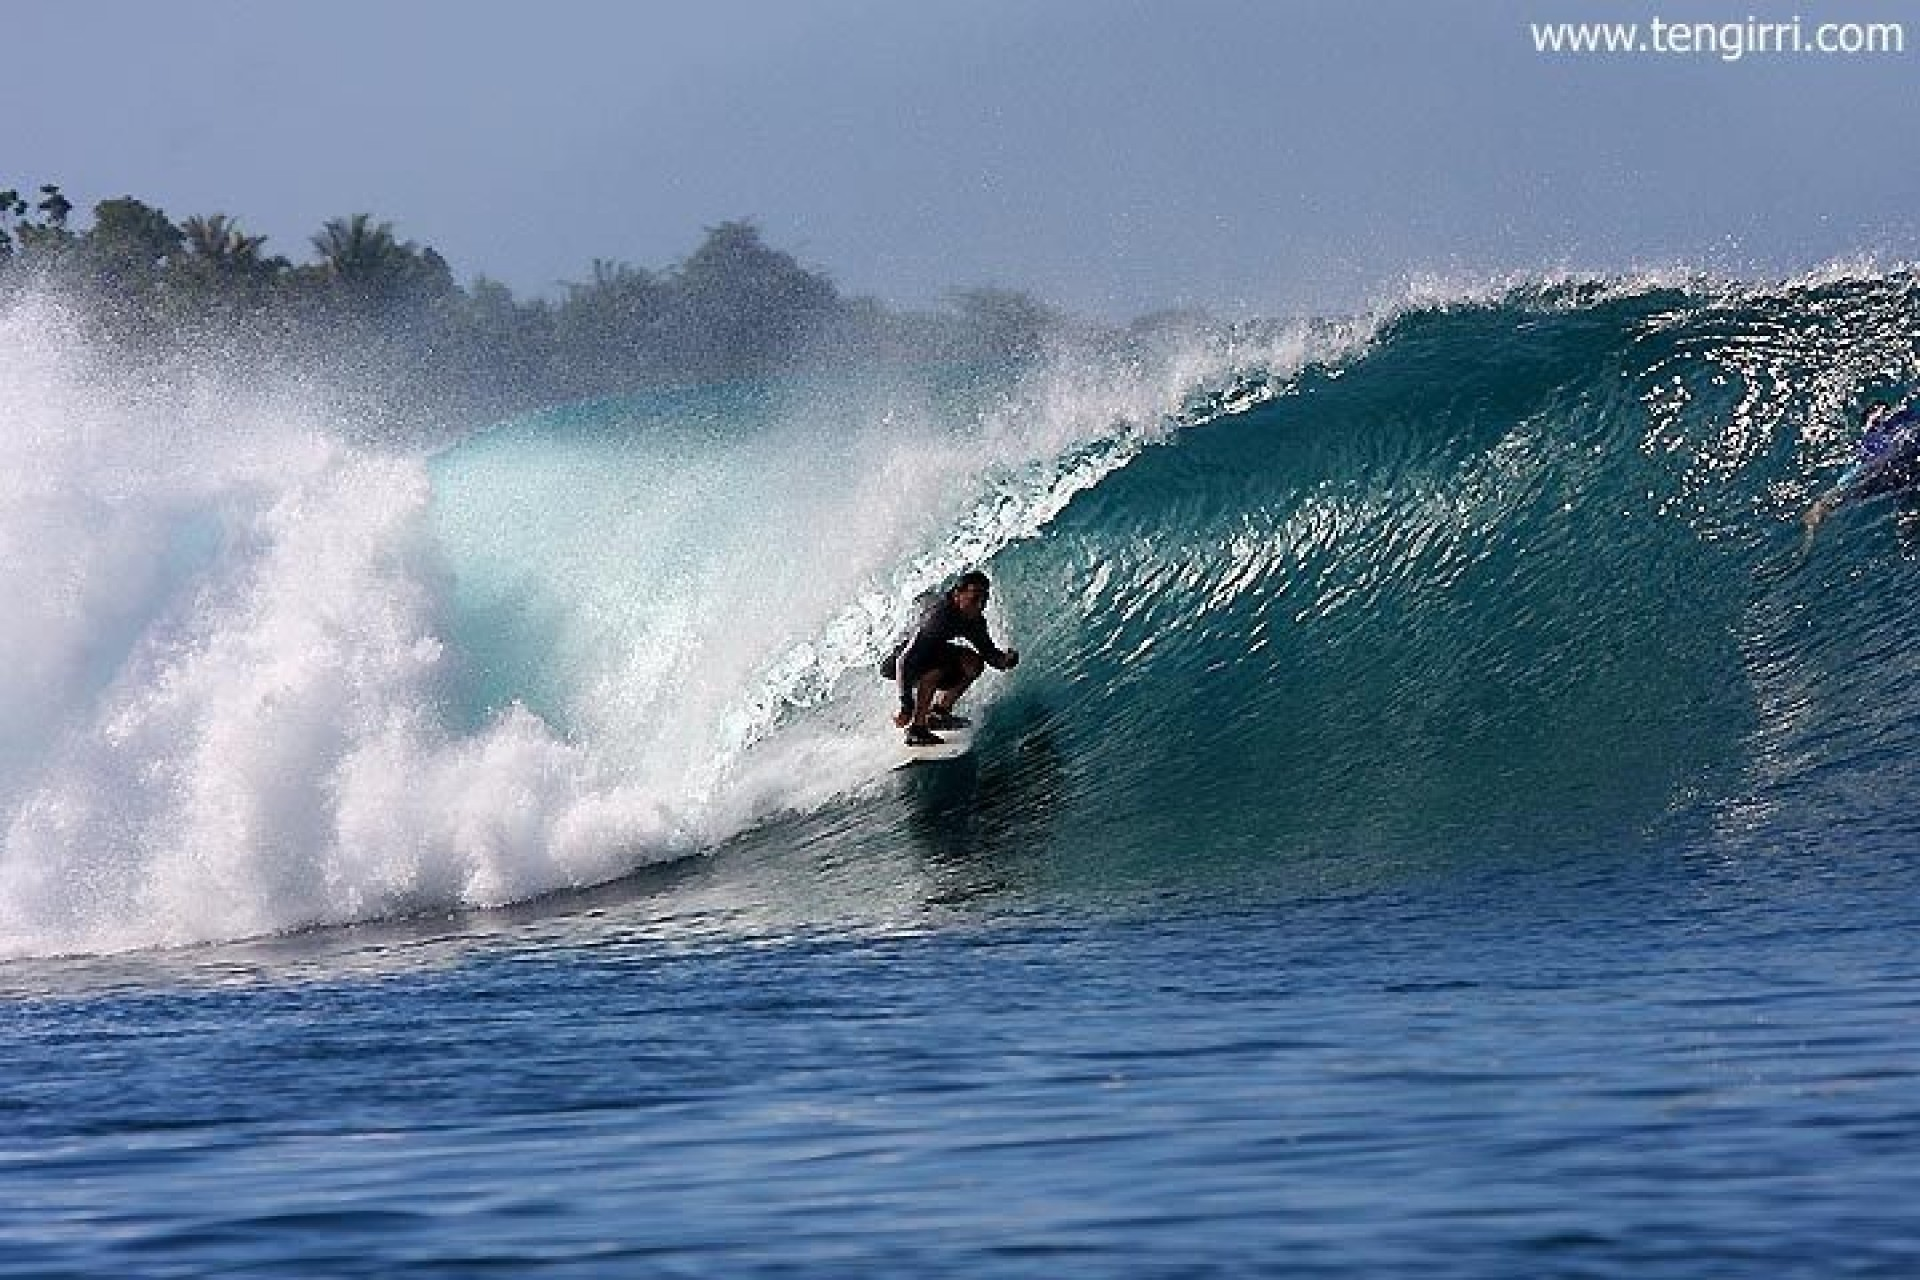 Tengirri Surf Charters's photo of Greenbush